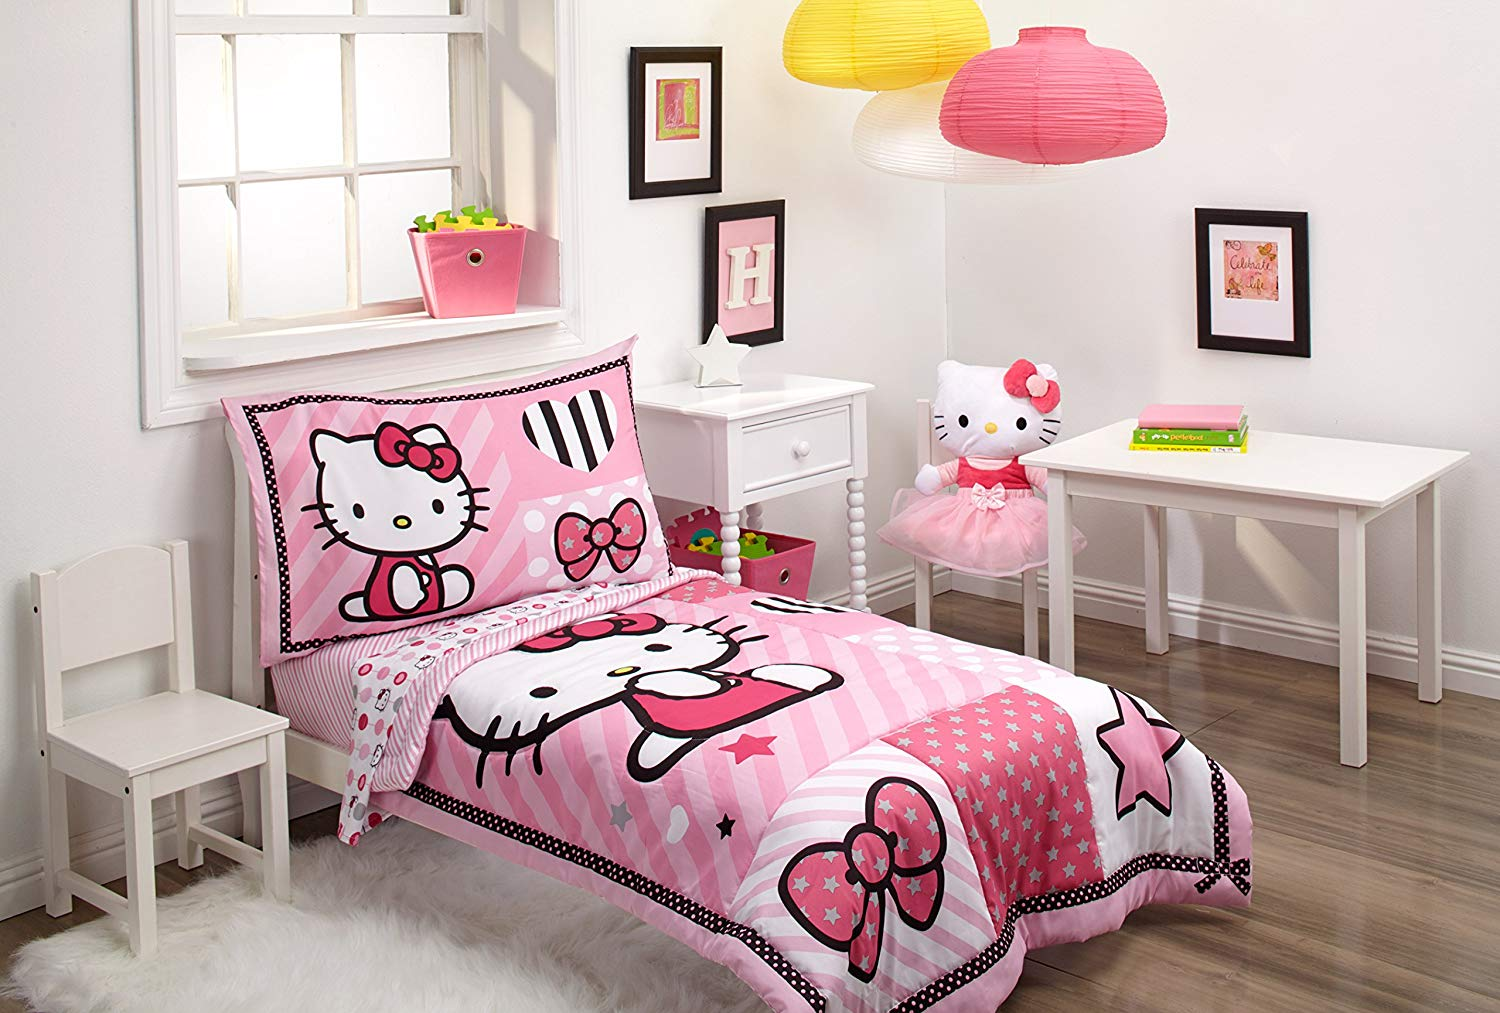 Sanrio Hello Kitty Sweetheart 4 Piece Toddler Set